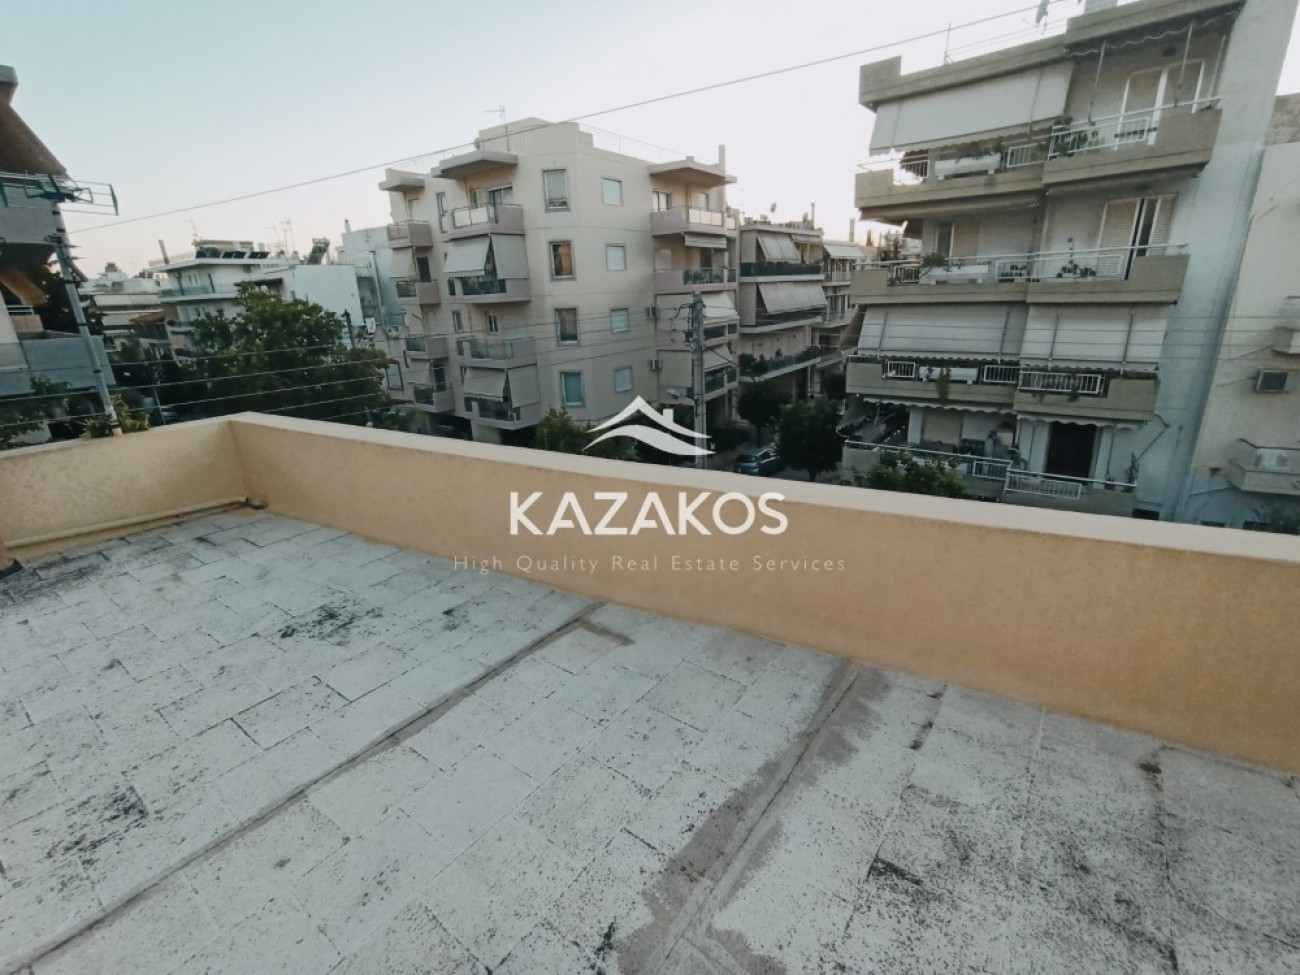 House for Sale in Nea Philadelfia, Central & West Region of Athens, Greece